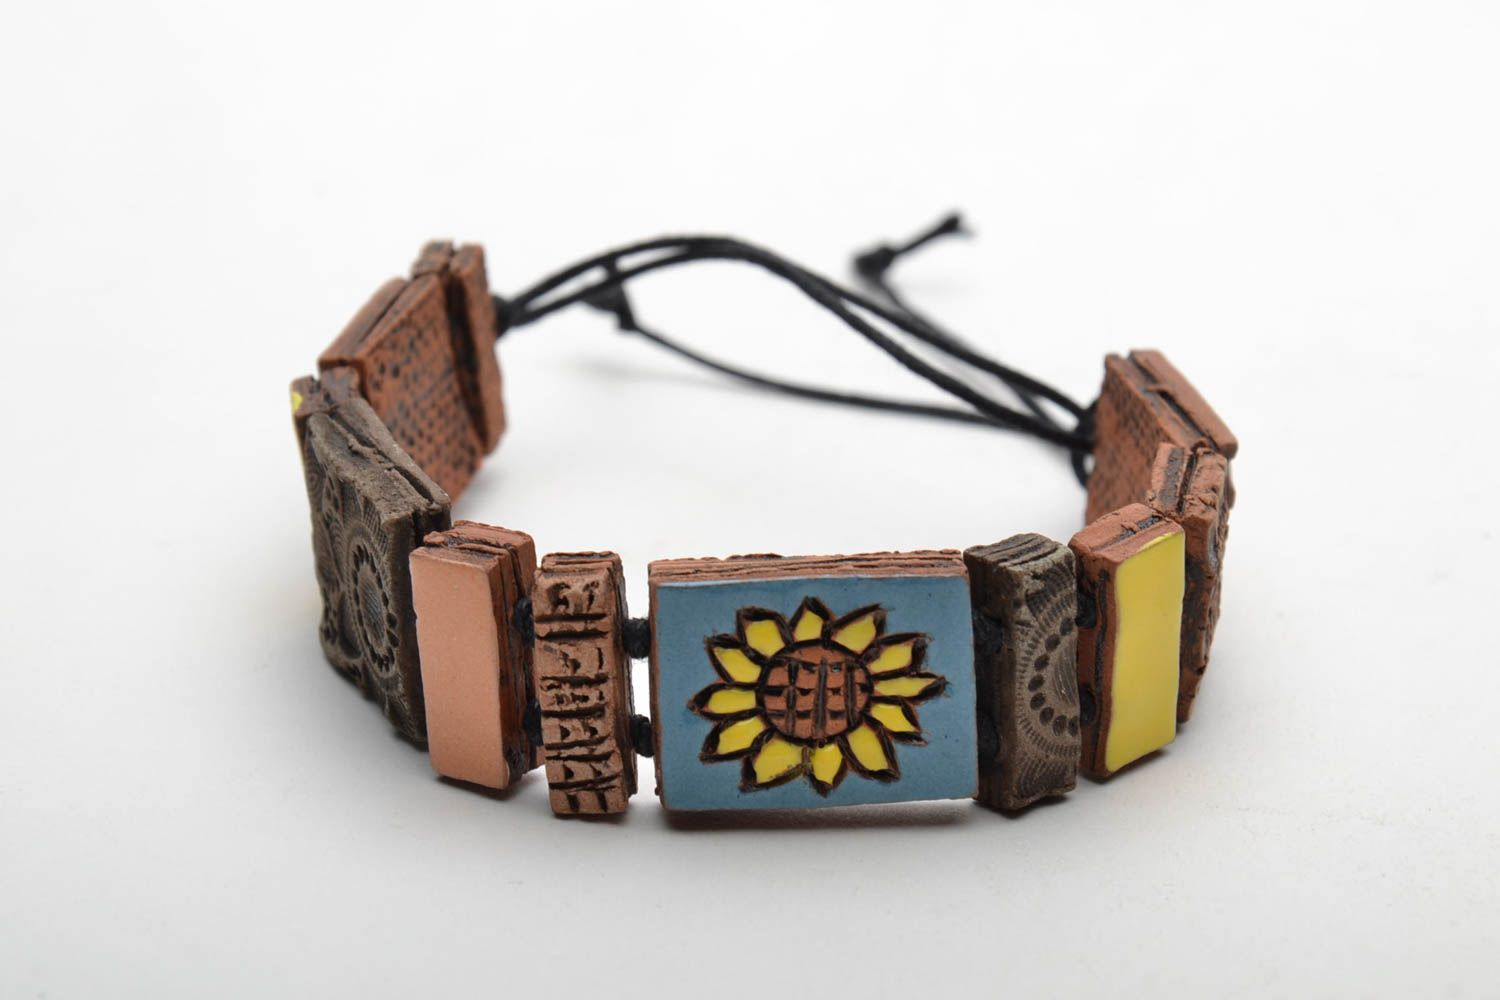 Ceramic bracelet with square beads photo 5